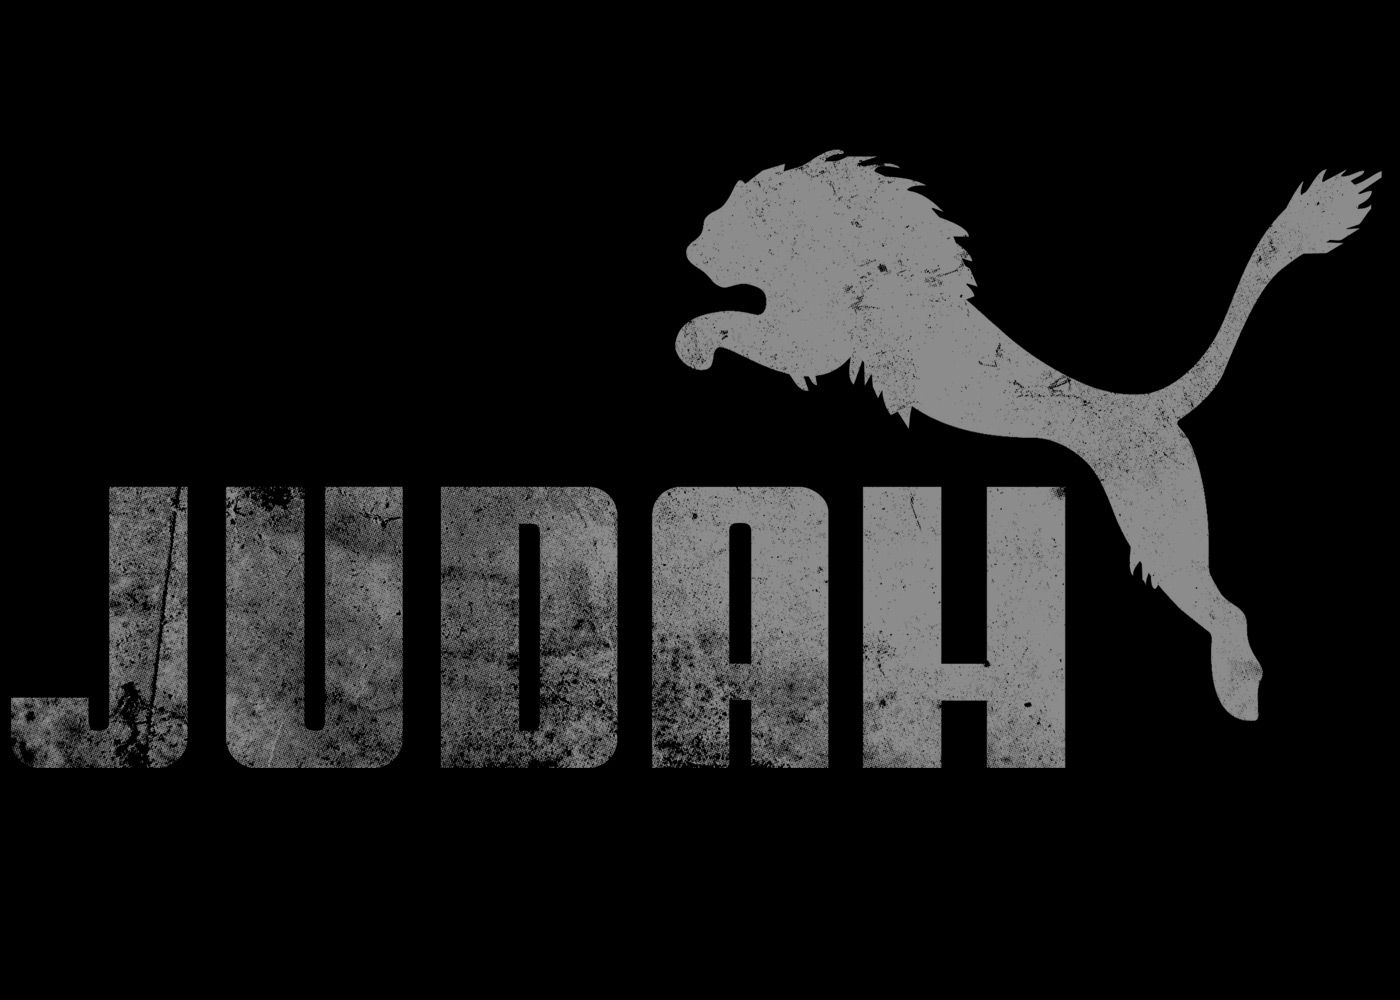 Lion of judah free christian desktop wallpaper c28 lion of judah wallpaper thecheapjerseys Image collections